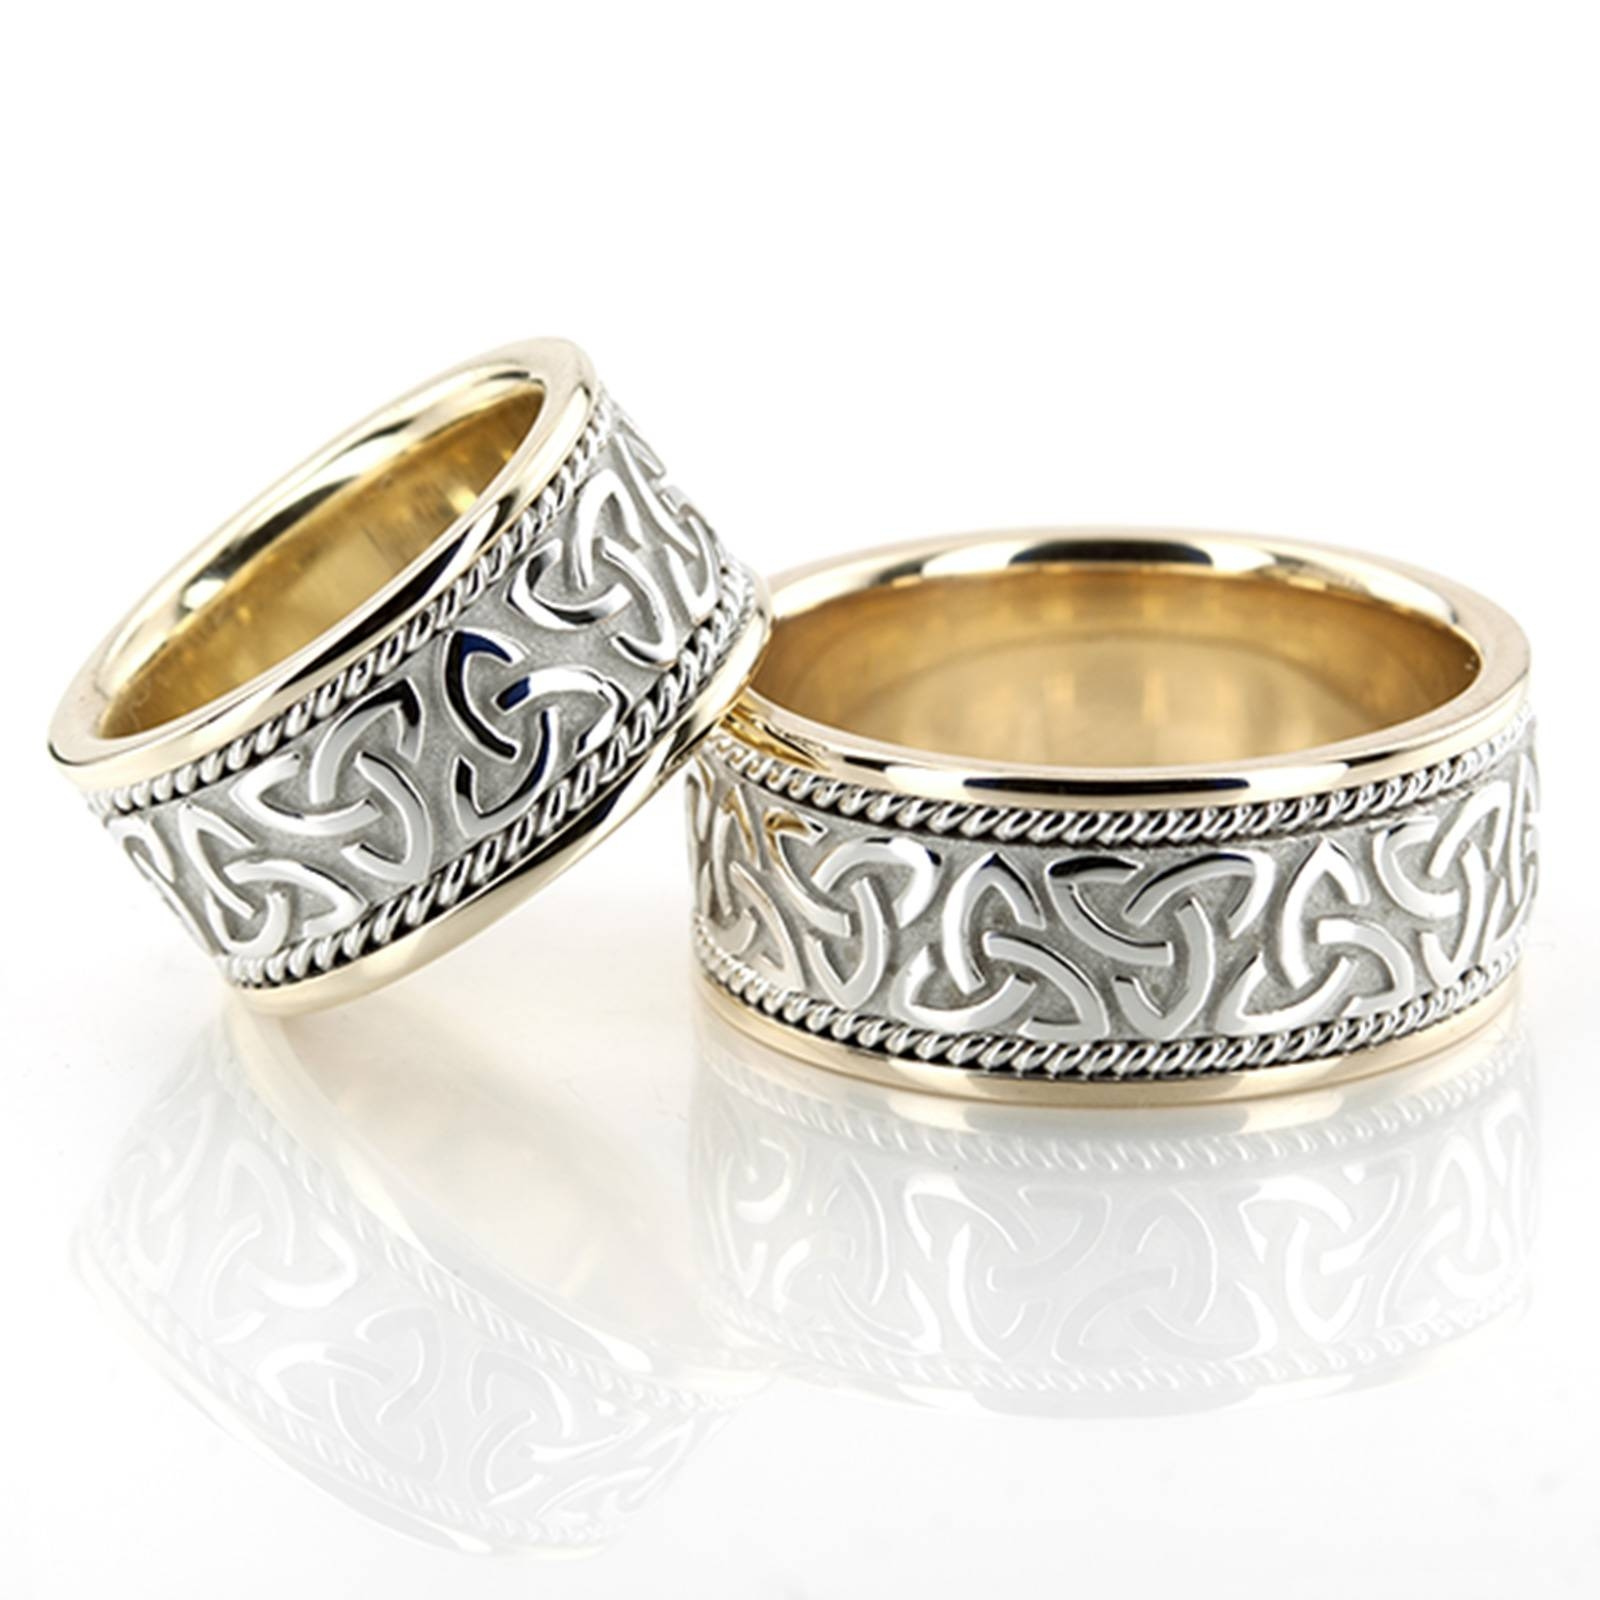 Wedding Rings : Womens Wedding Ring Sets Rings For Women Beautiful Within Irish Engagement Ring Sets (View 15 of 15)